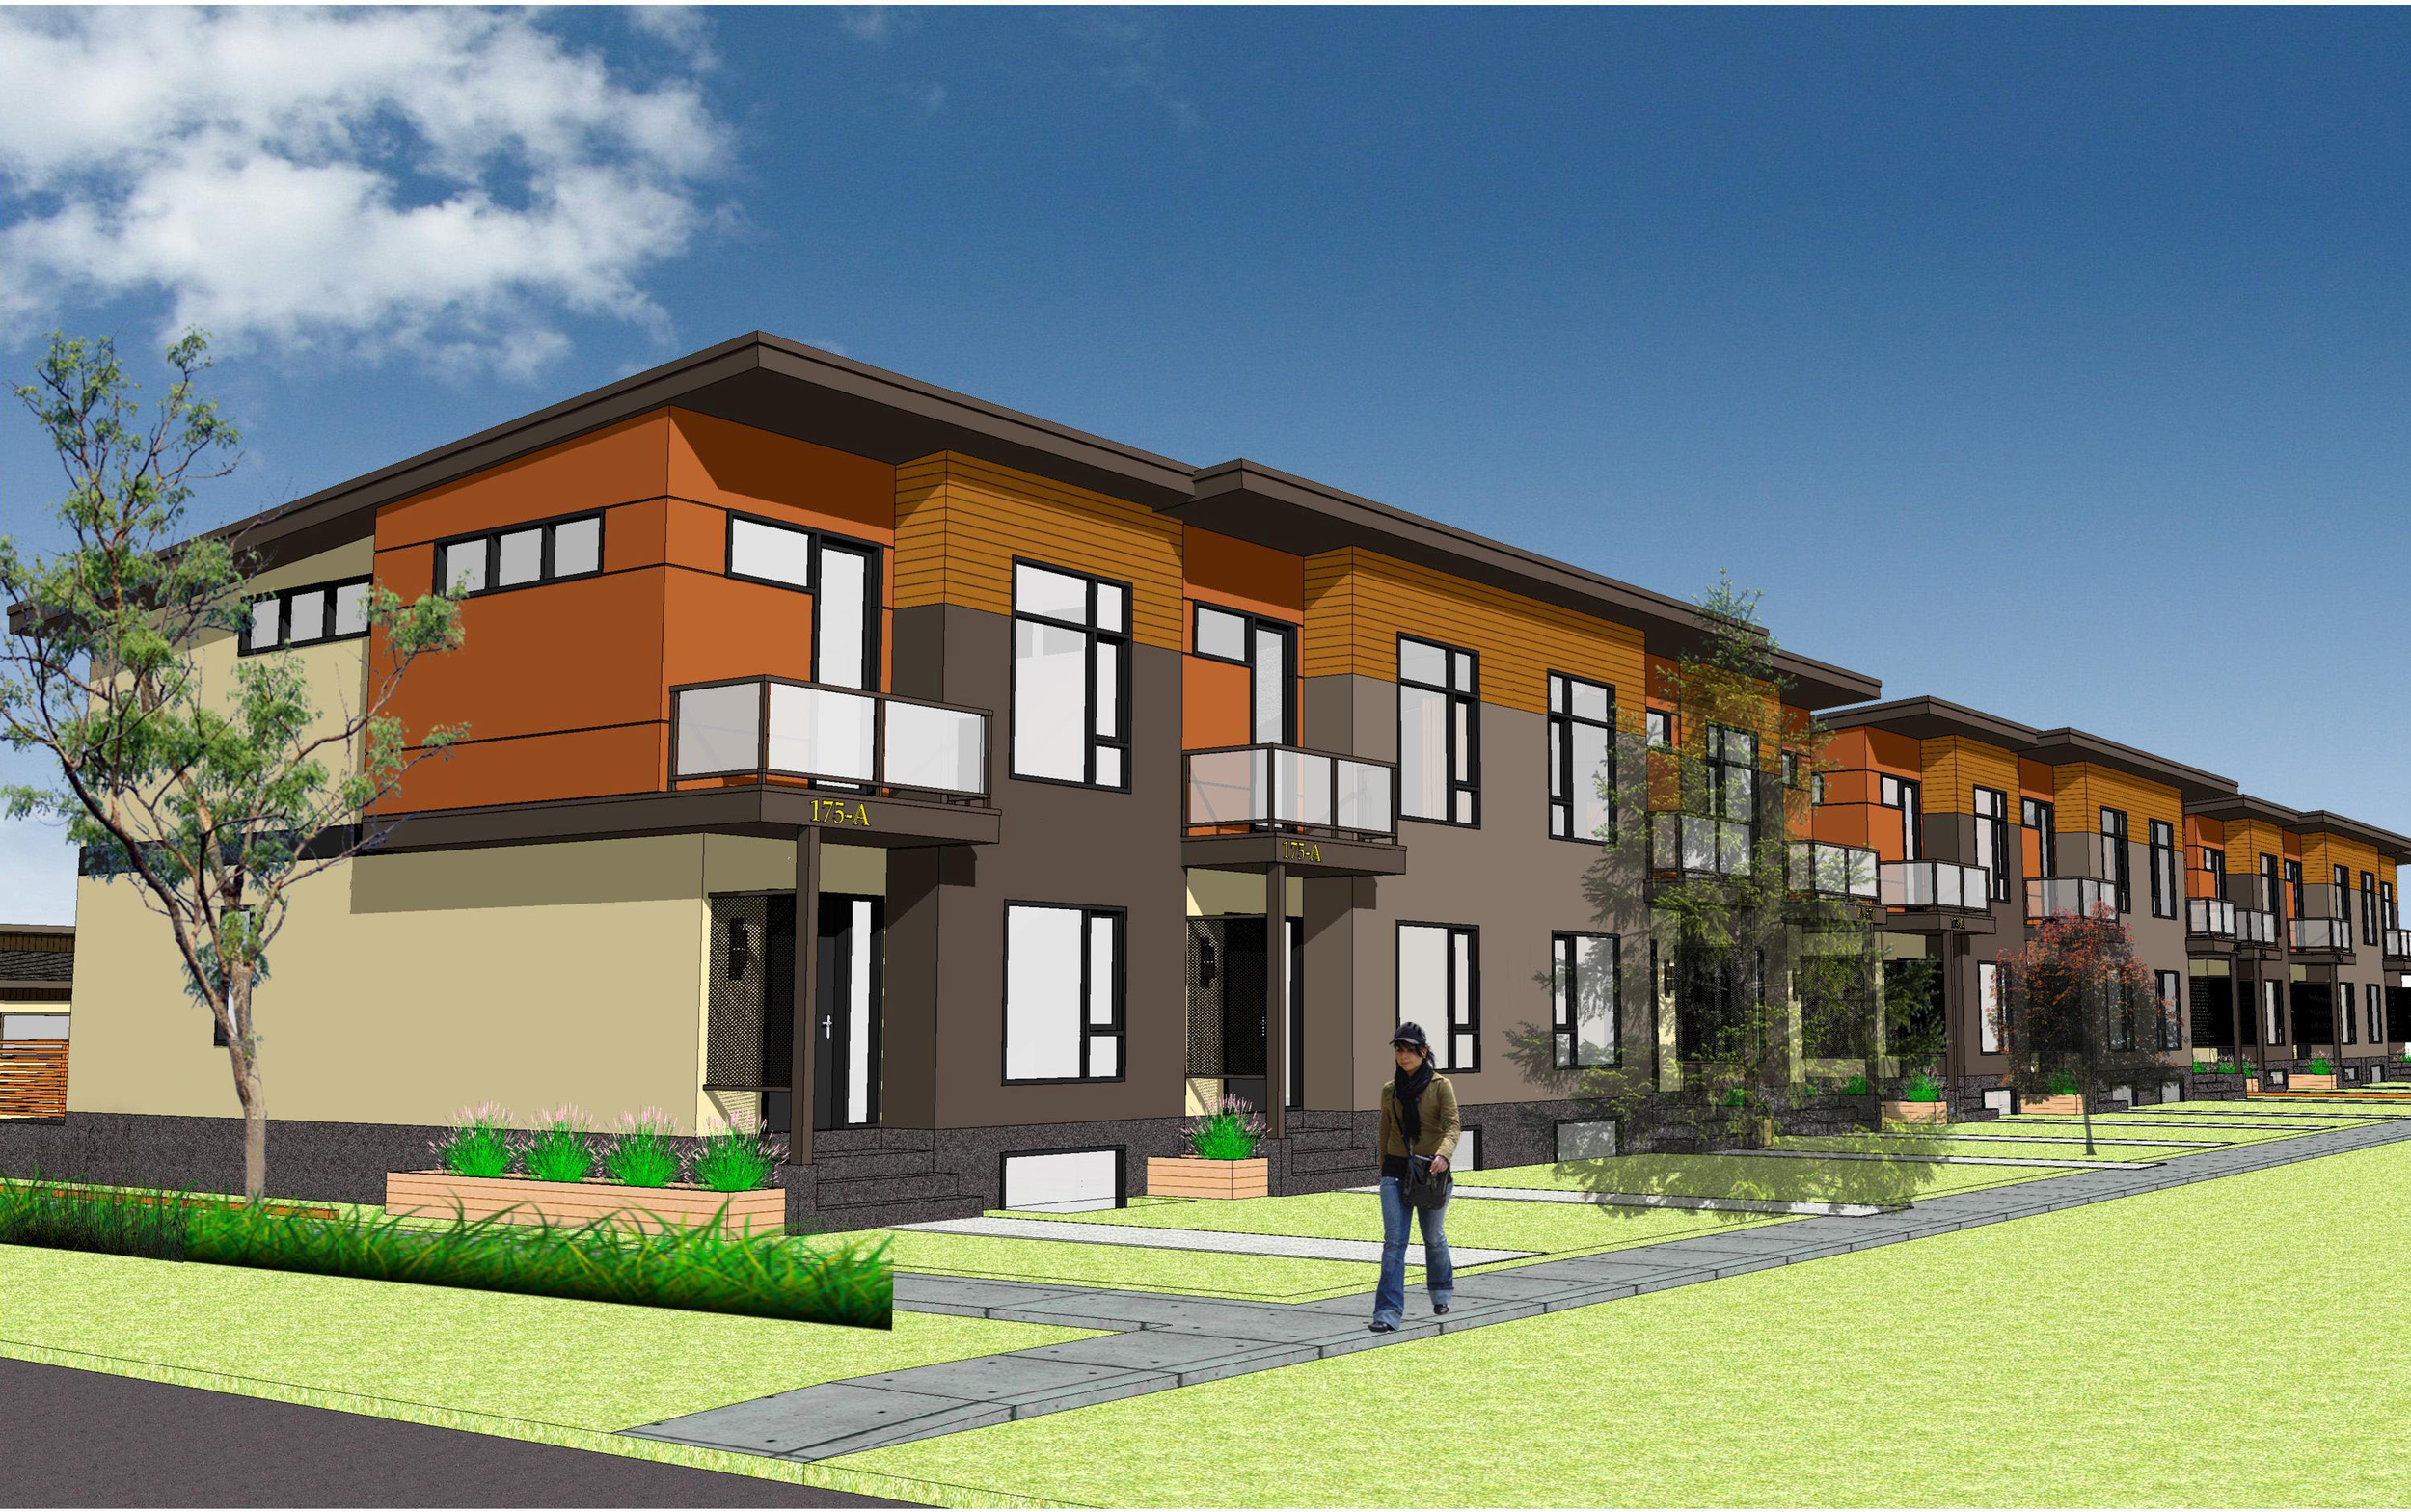 WATER FORD GREEN TOWN HOMES PLANS-page-001.jpg